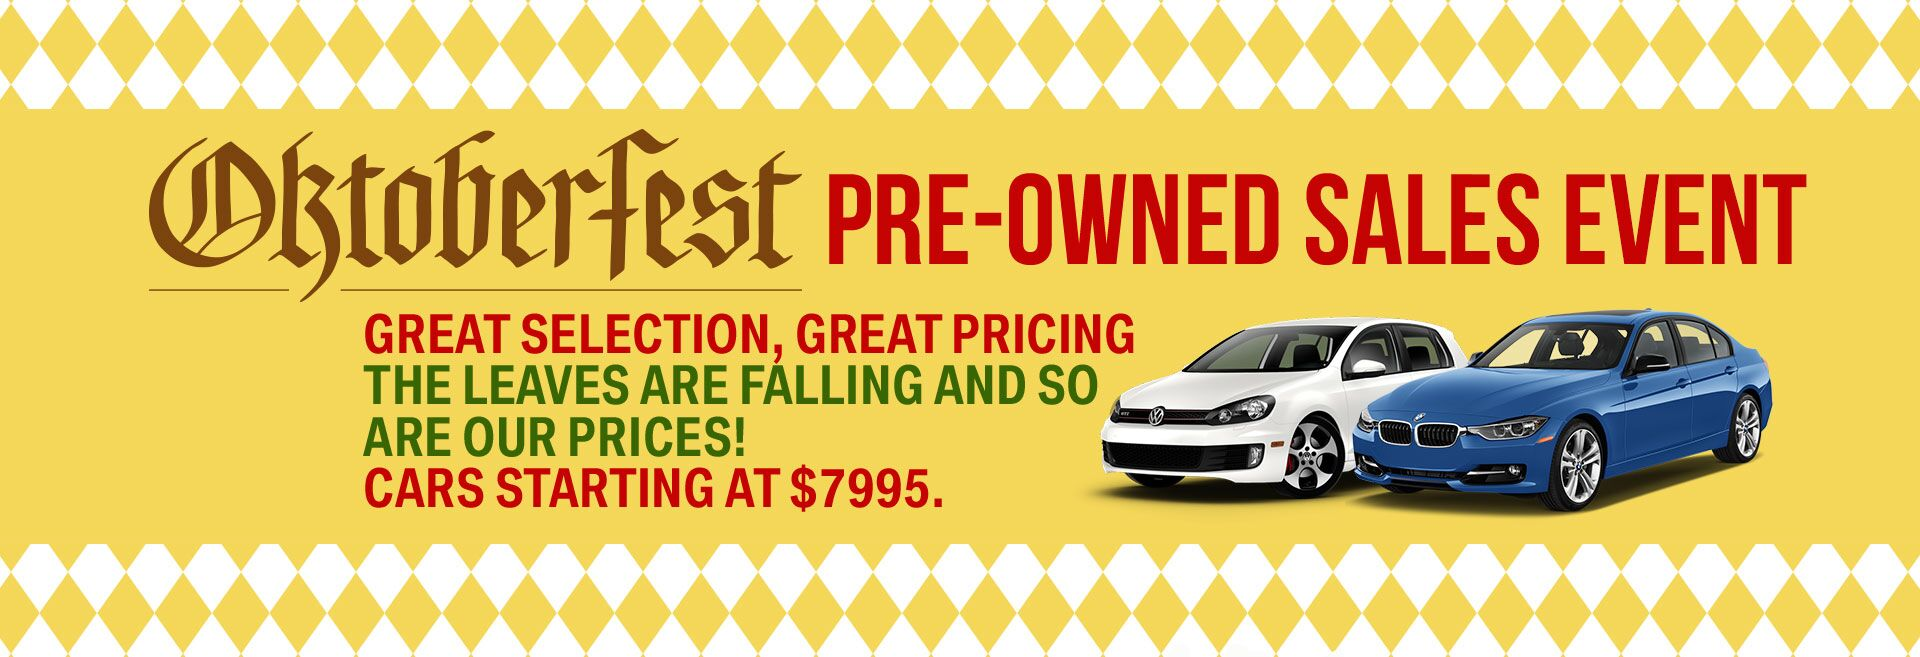 Oktoberfest Pre-Owned Sales Event